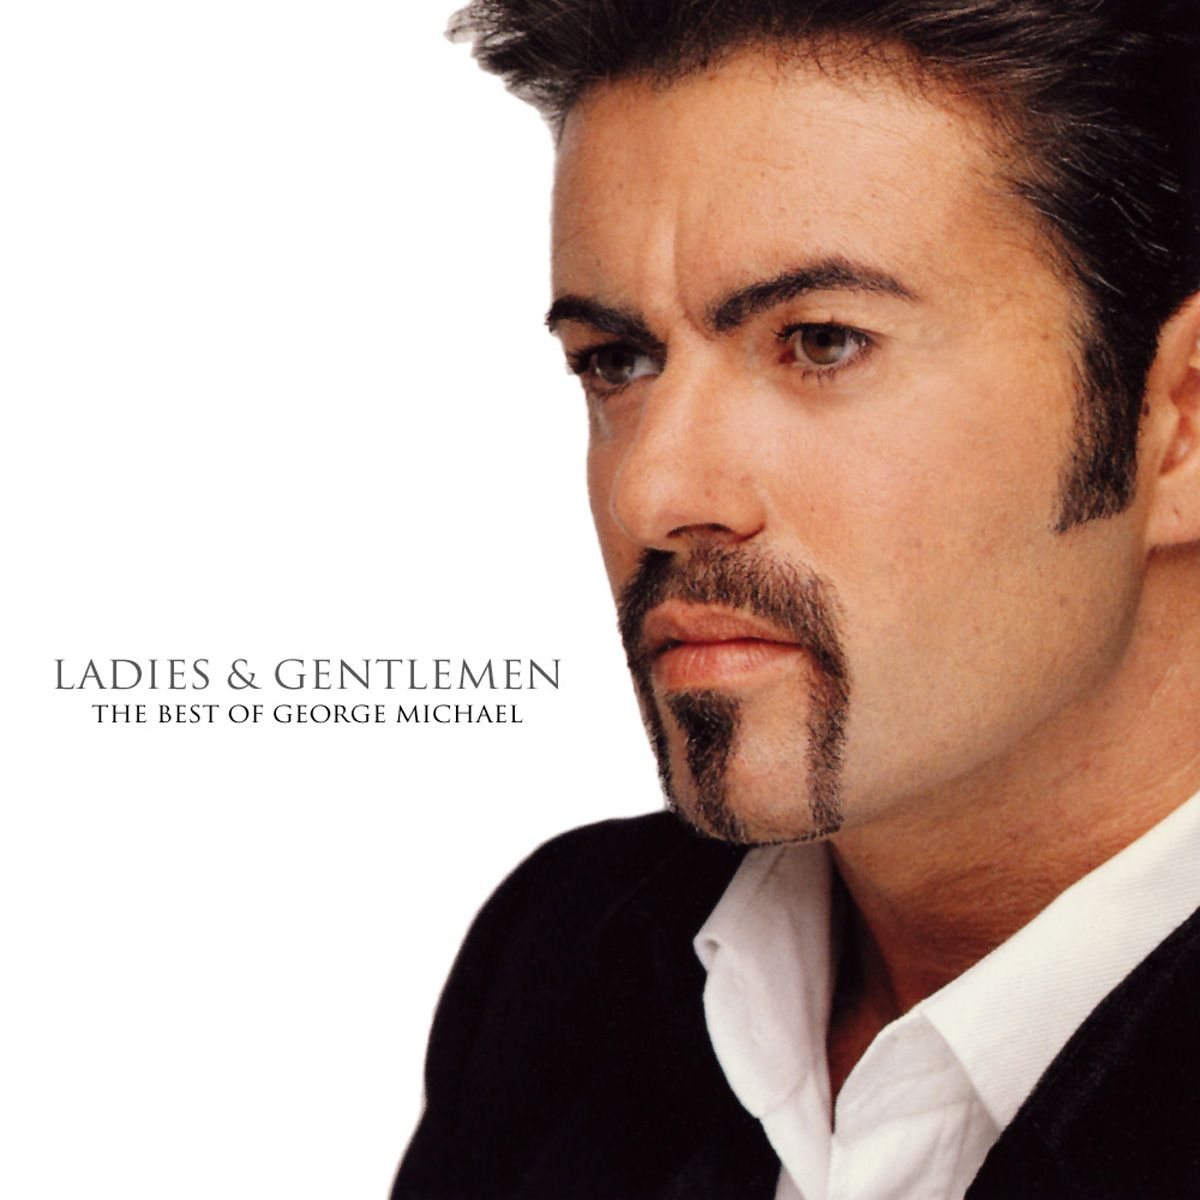 George Michael - Ladies & Gentlemen - The Best Of George Michael album cover